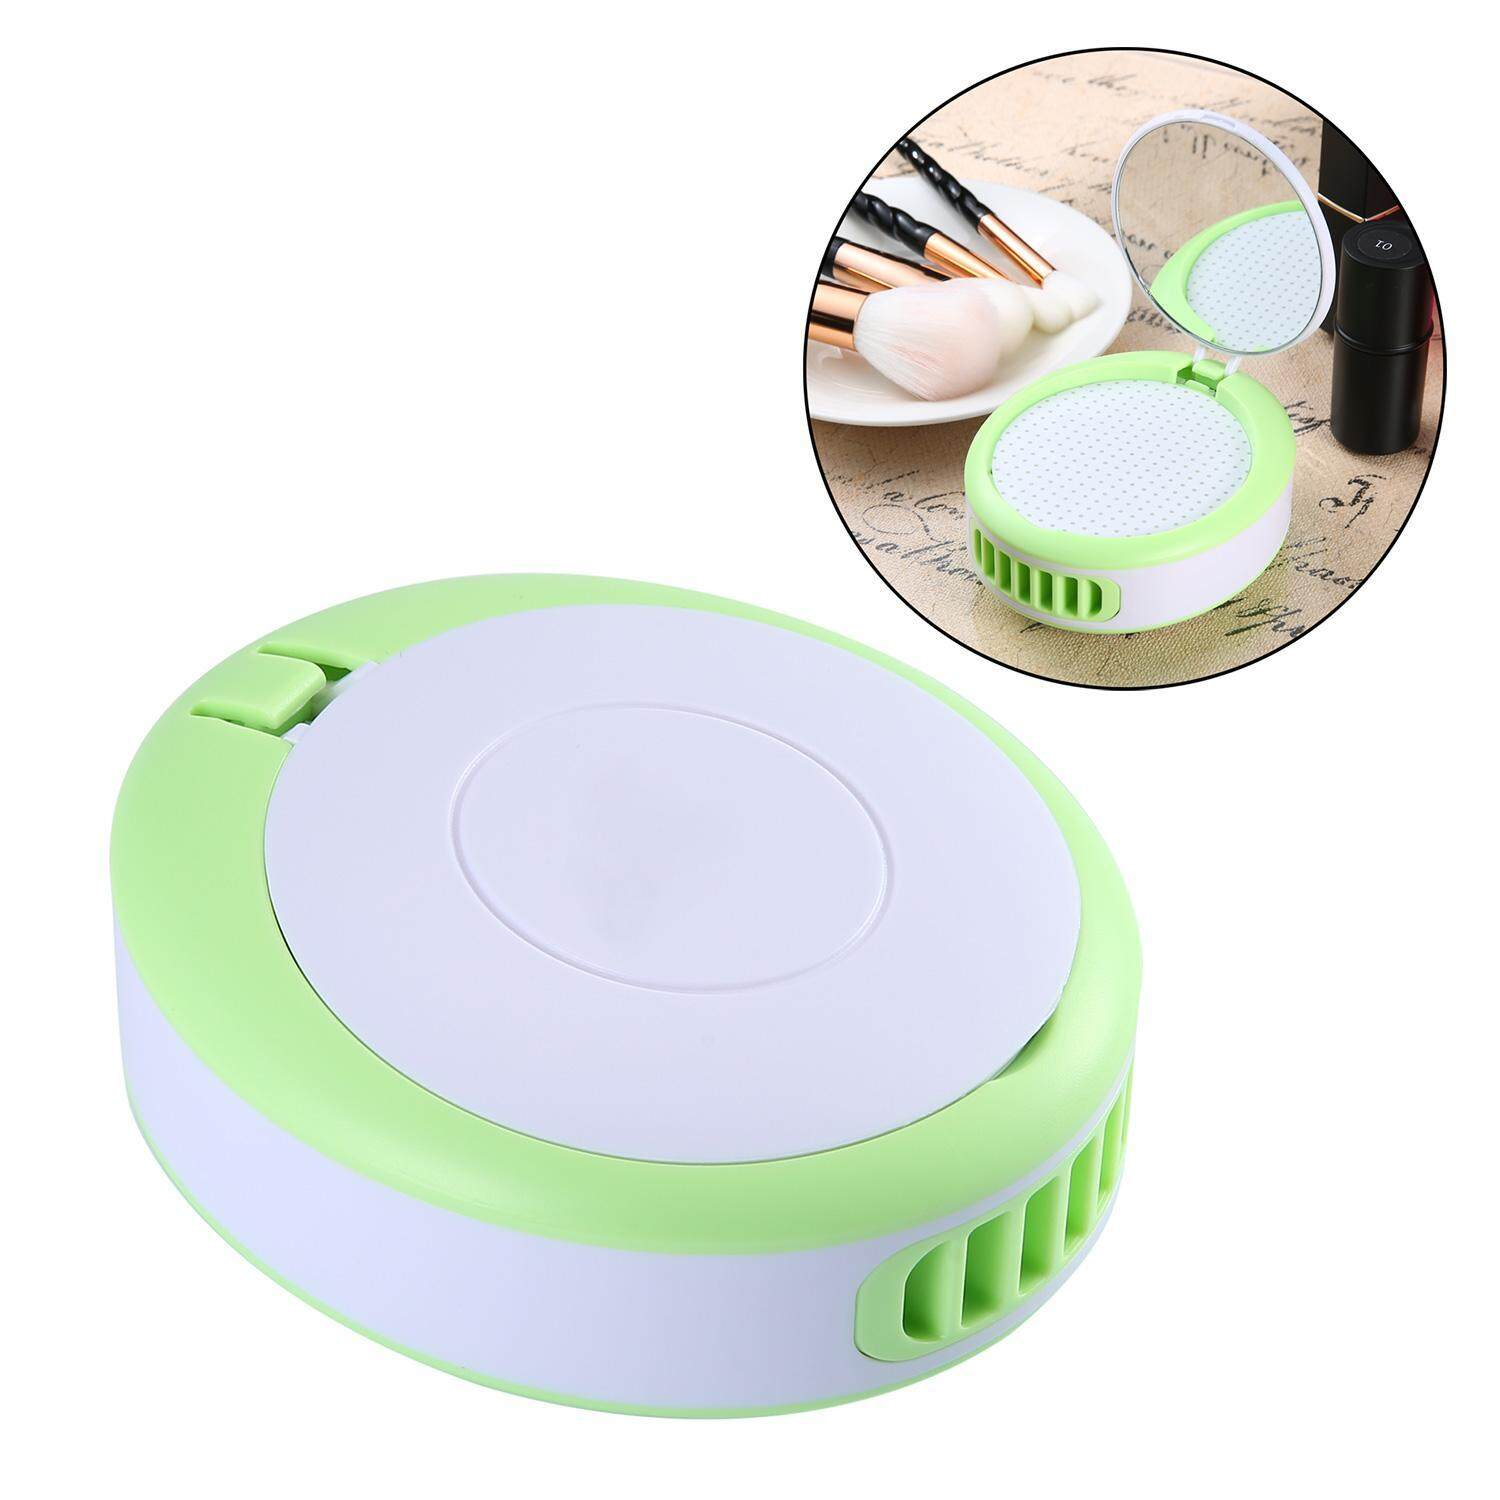 yeopor Summer Cooler Mini Portable Usb Fan Handheld Bladeless Fan With Makeup Mirror(Light Green) - intl